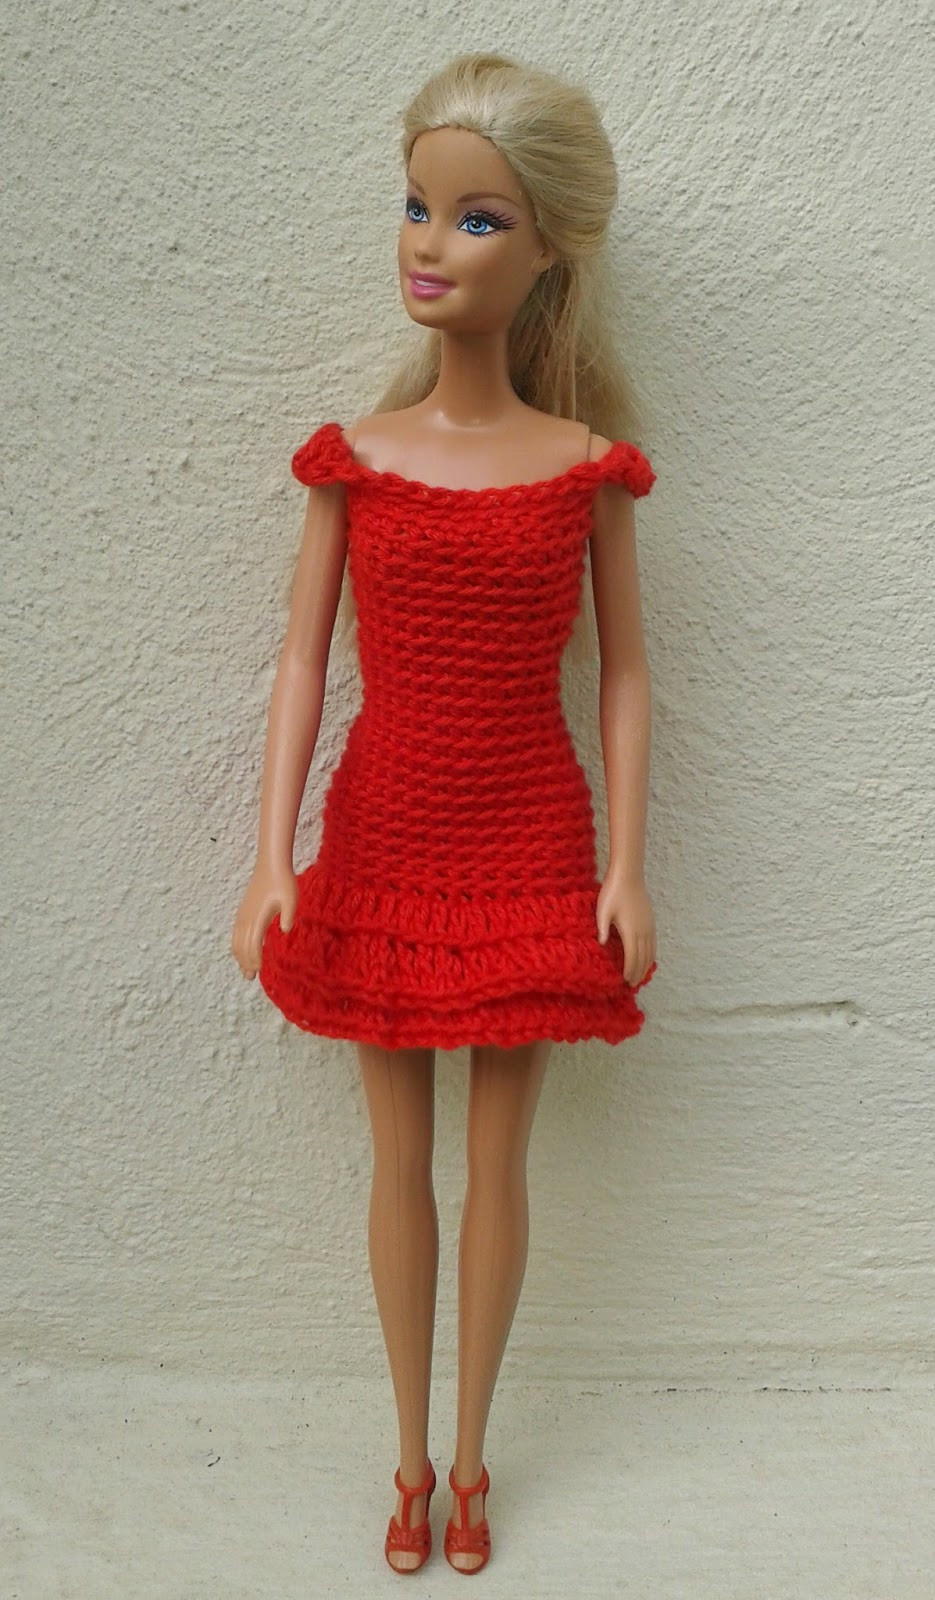 Linmary Knits Barbie in red crochet dresses